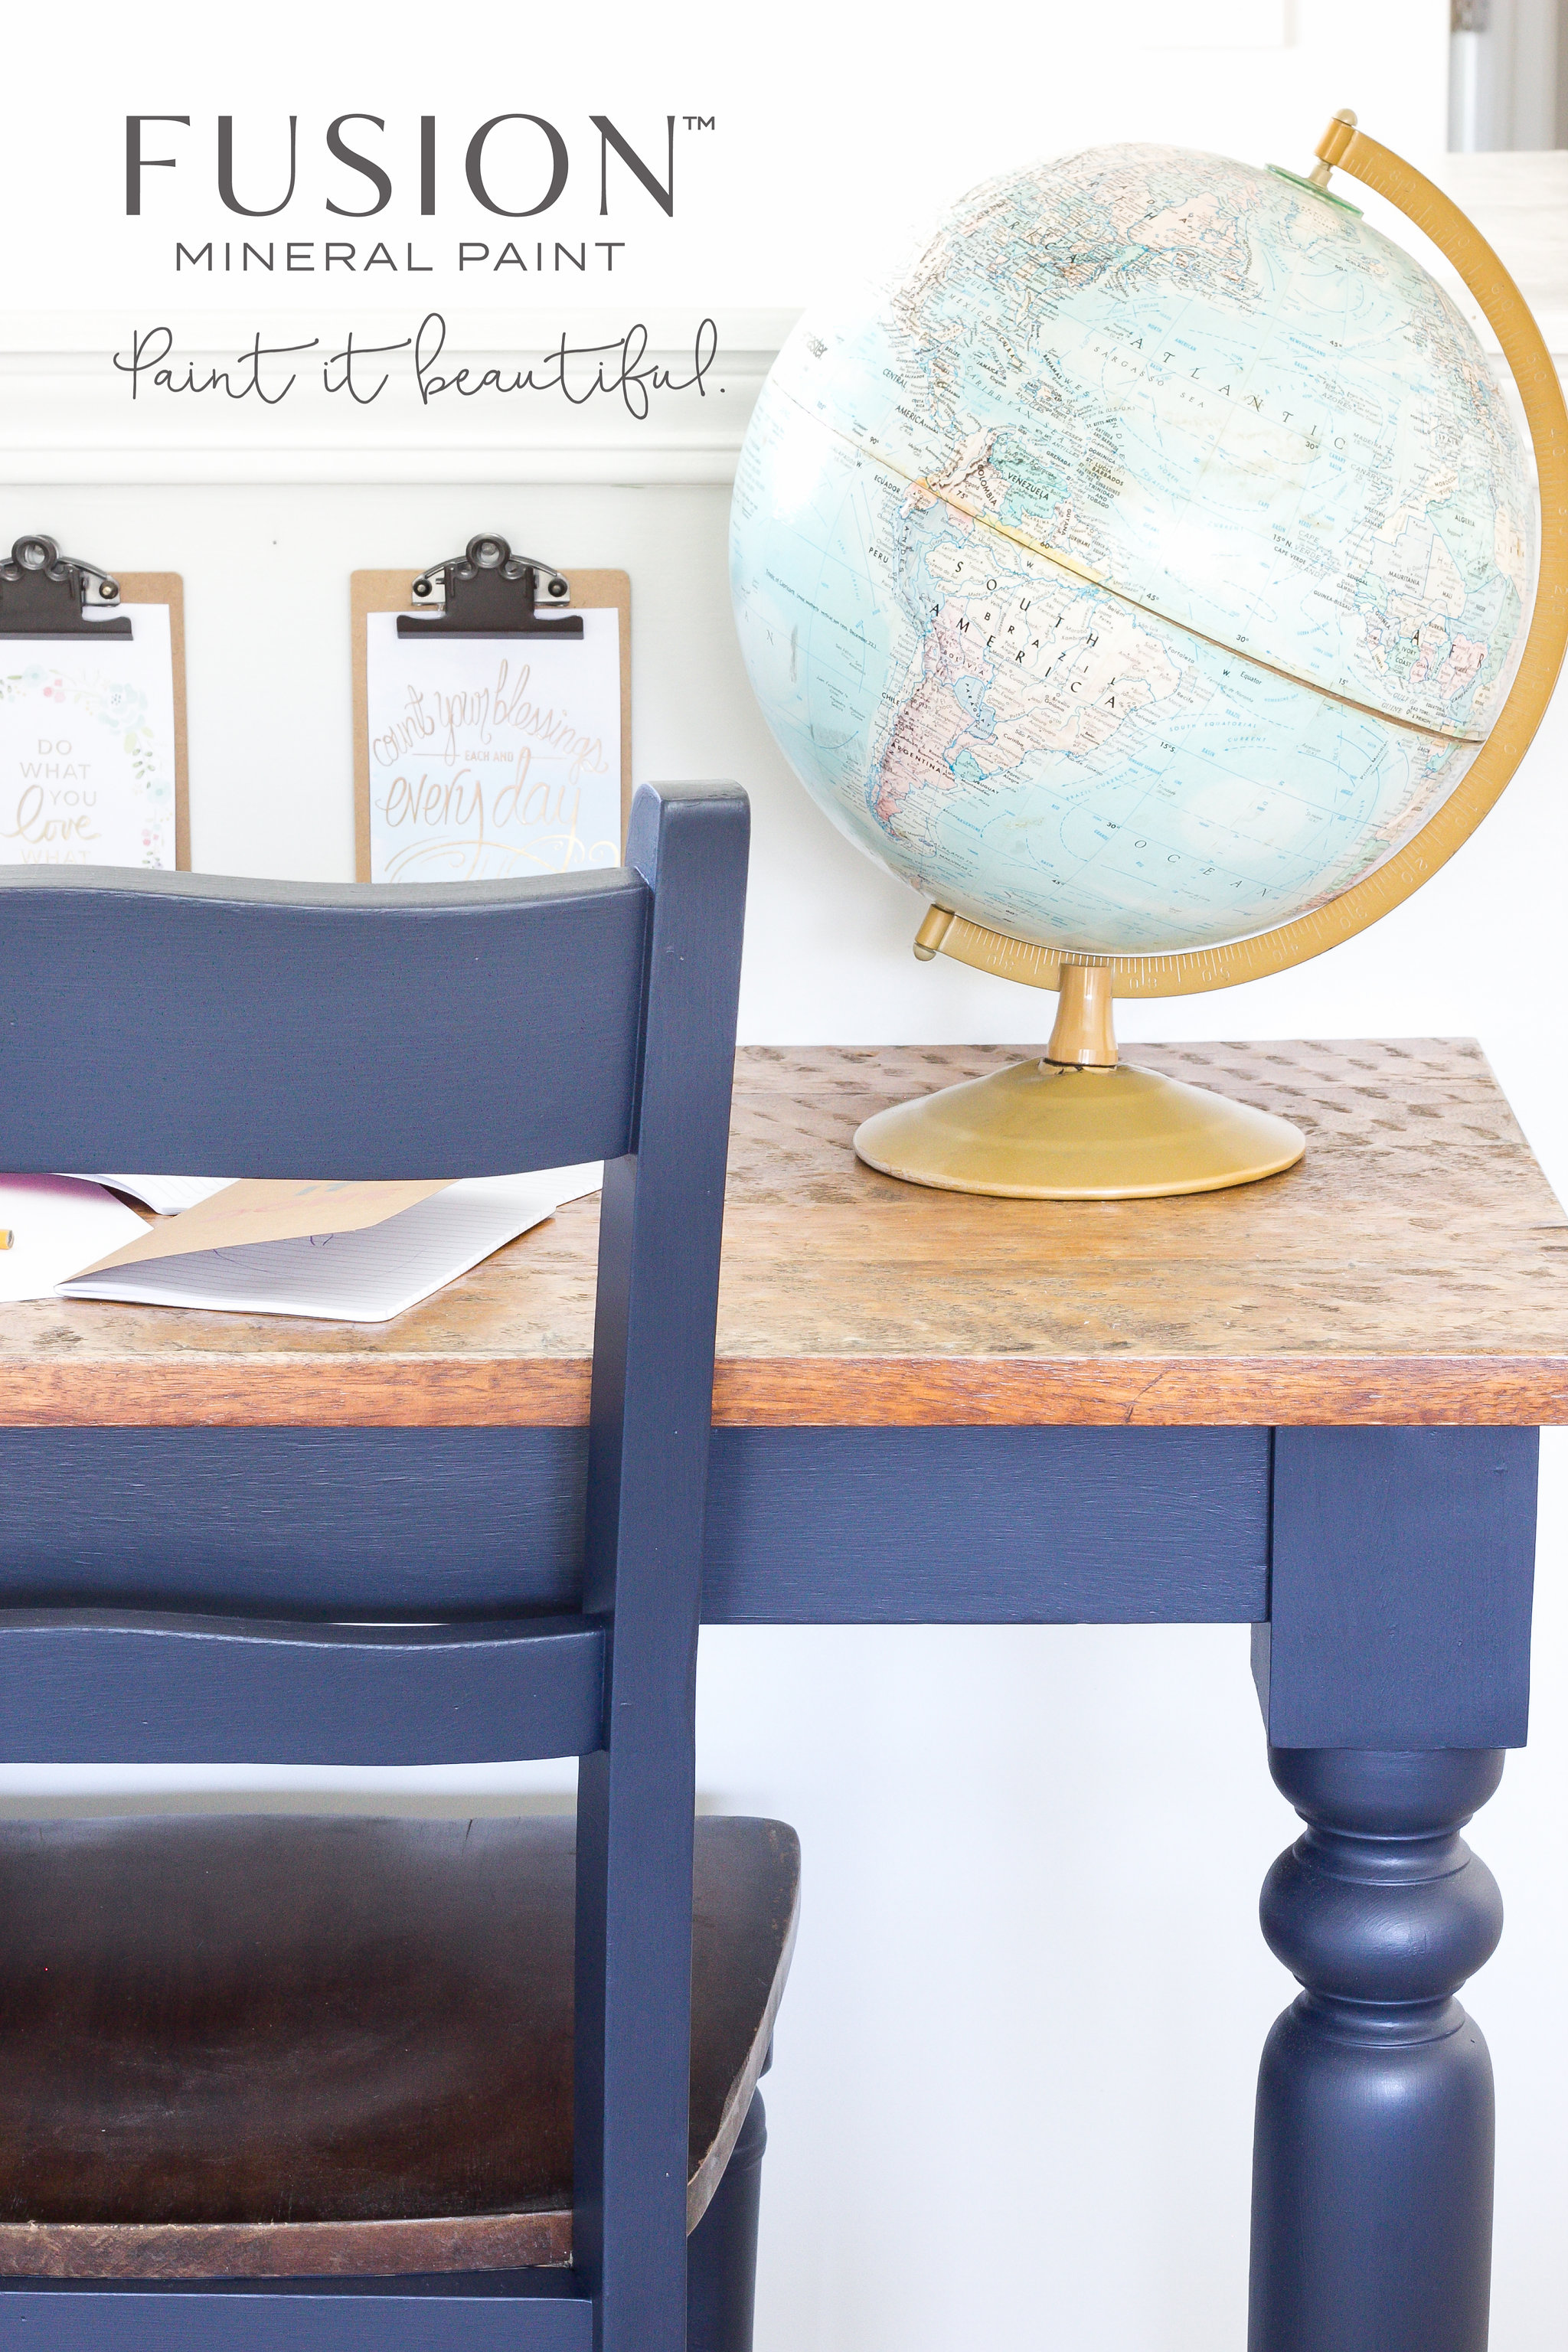 Smooth Matte finish in Midnight Blue Fusion Mineral Paint - Paint it Beautiful - for any style!